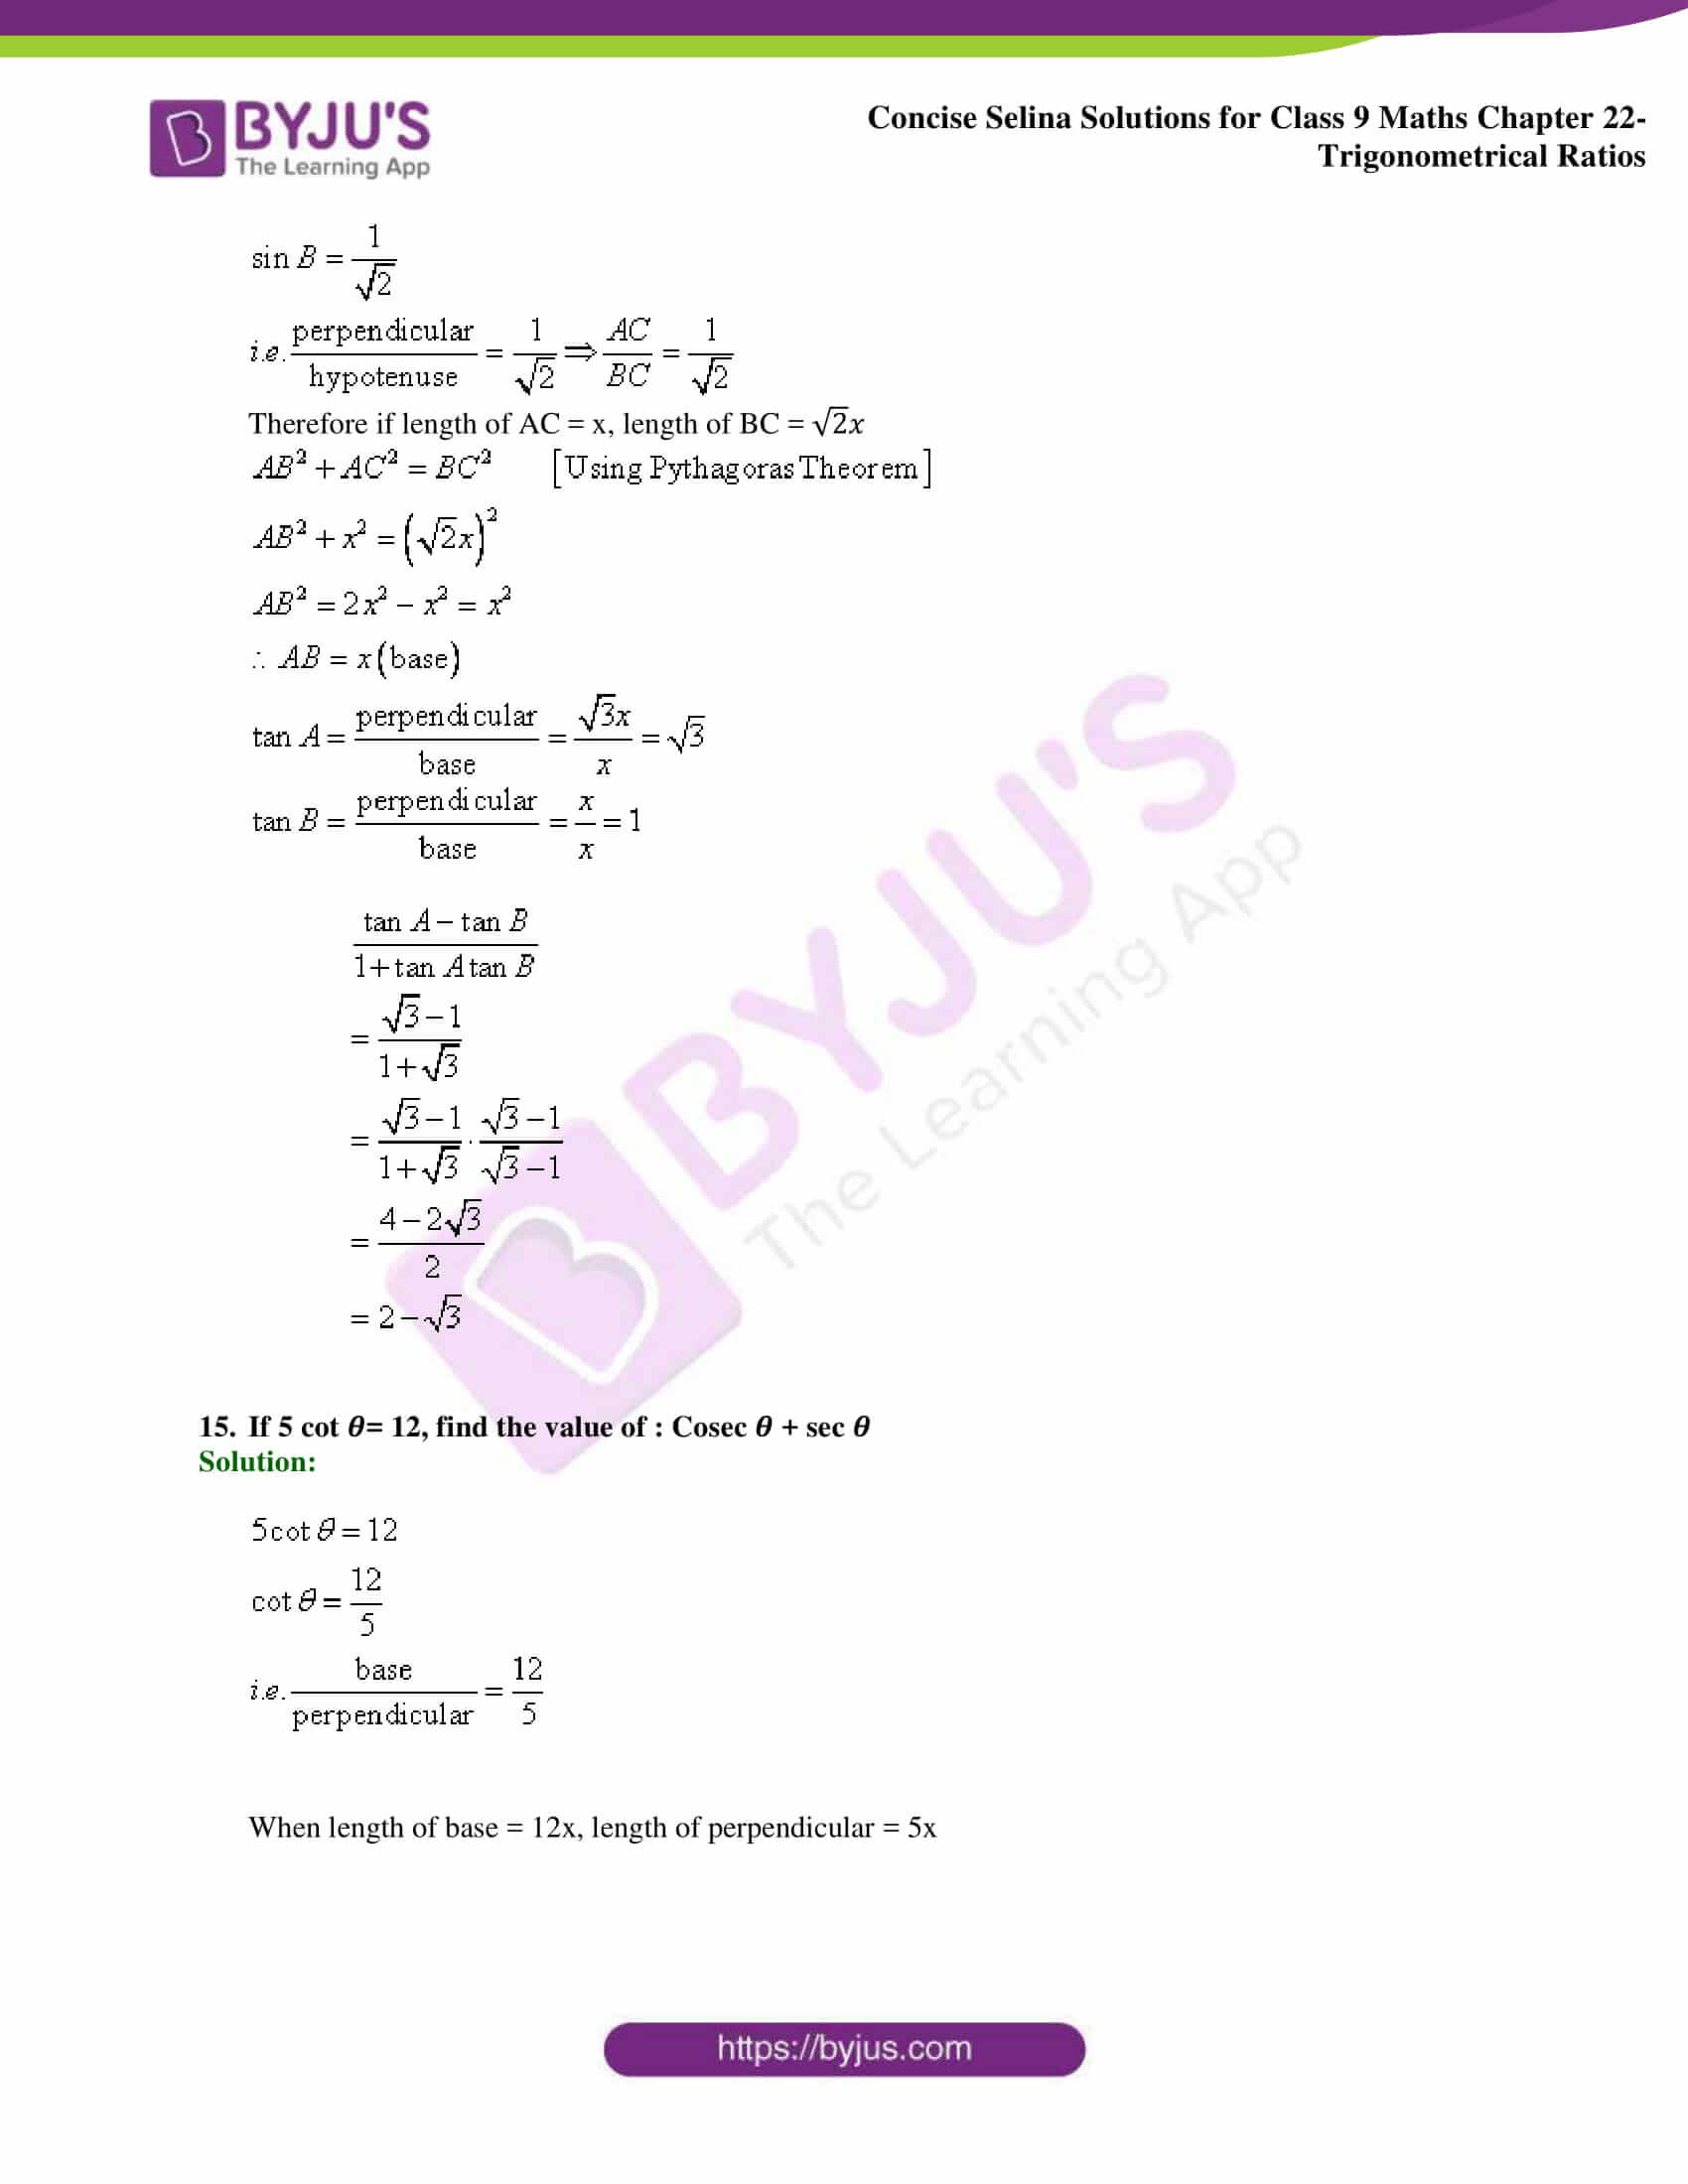 Concise Selina Solutions Class 9 Maths Chapter 22 Trigonometrical Ratios part 15